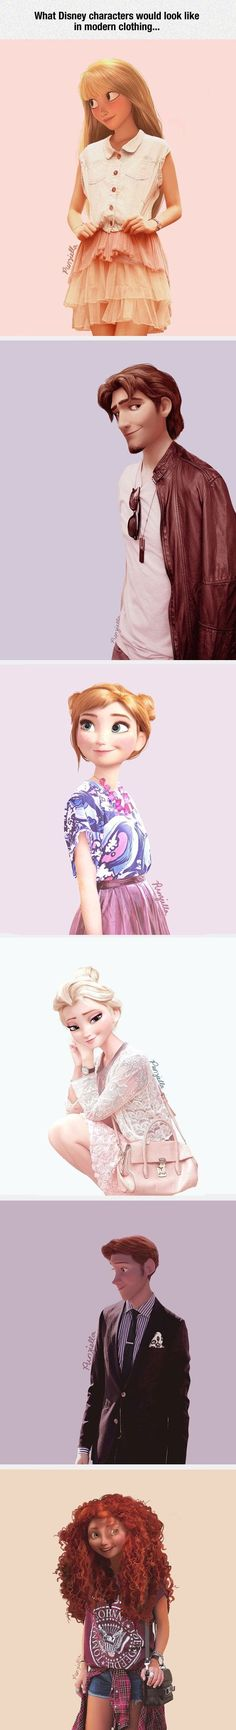 If Disney characters wore modern clothing - Cute, but if Rapunzel had bangs, wouldn't they have turned brown?<= this previous comment!